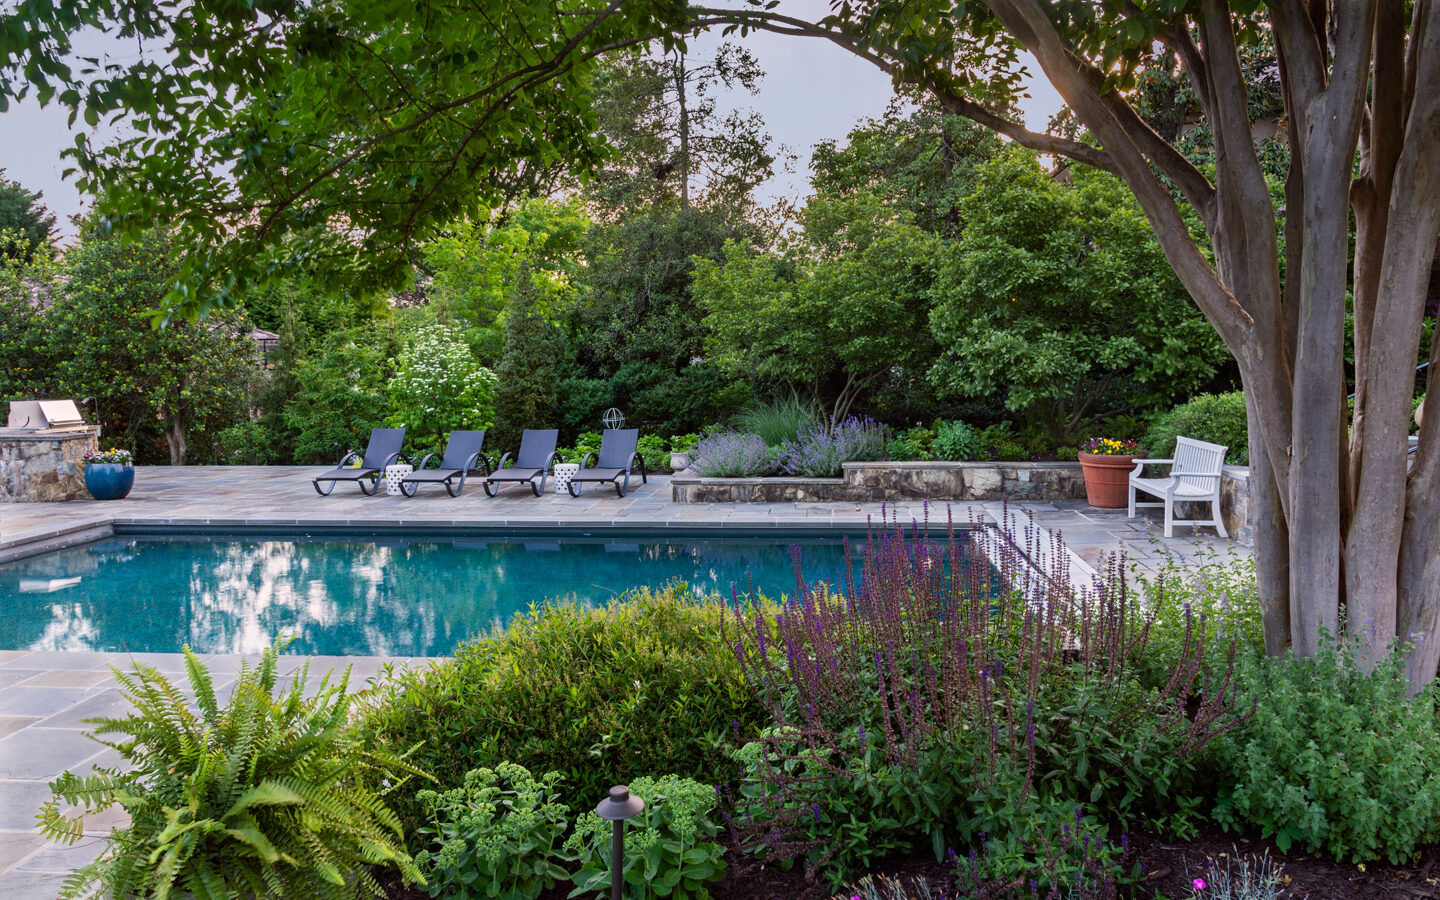 Pool side lush plantings and beds